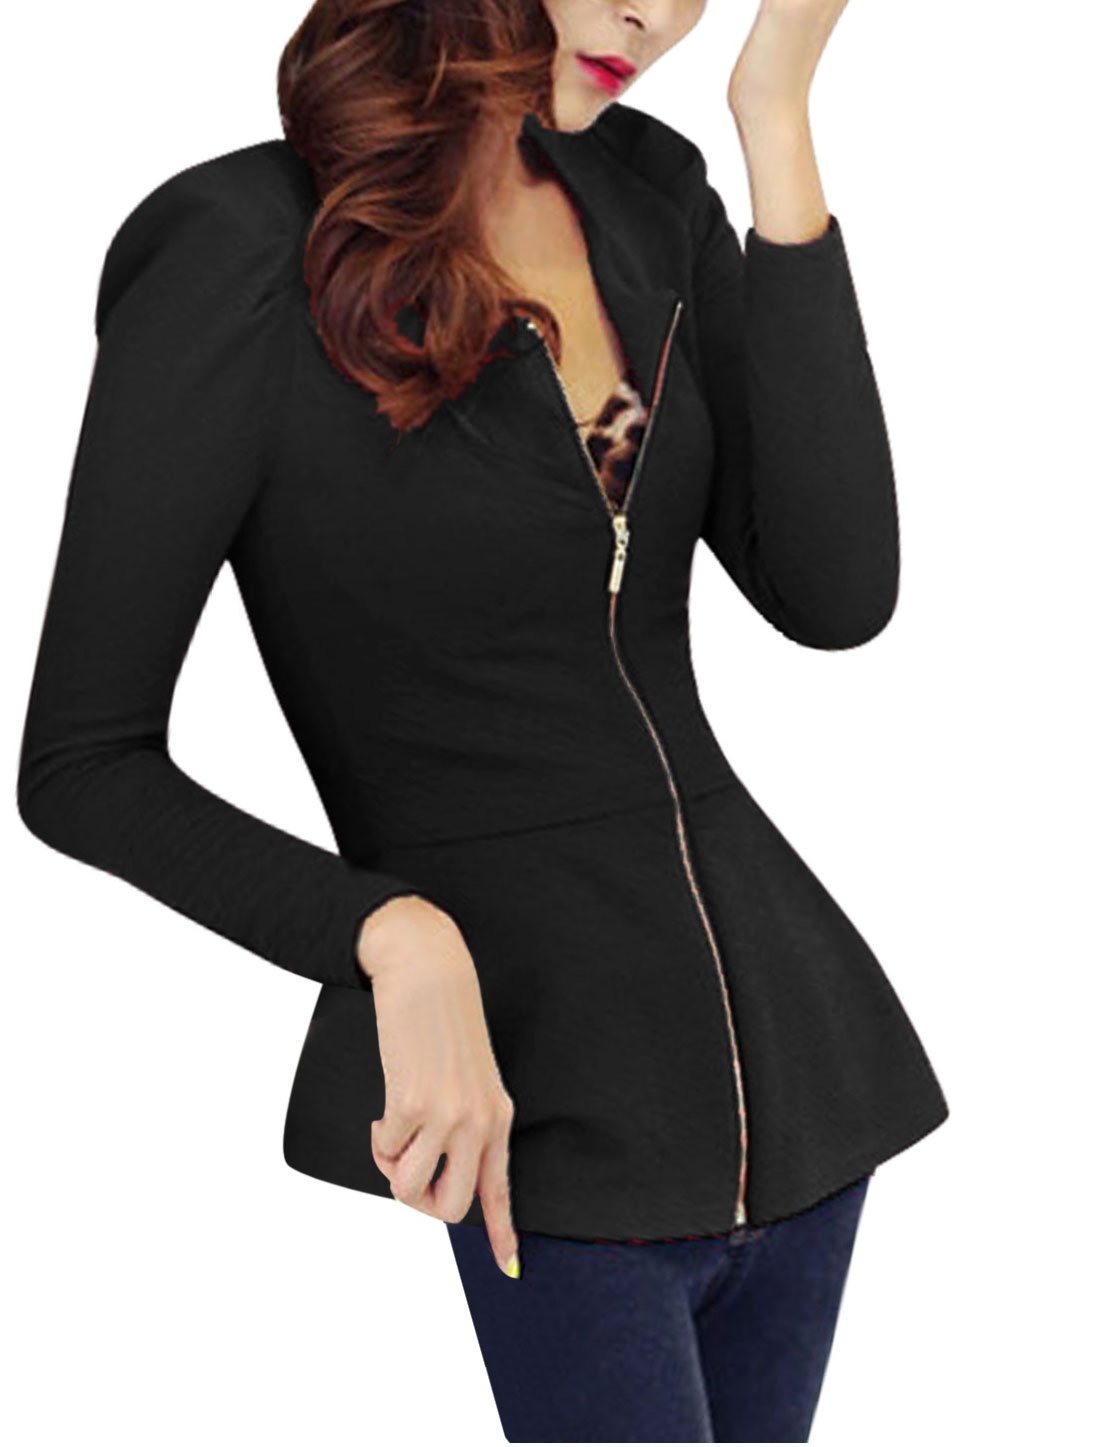 Women Round Neck Long Sleeves Zip Closure Textured Design Peplum Jacket Black M